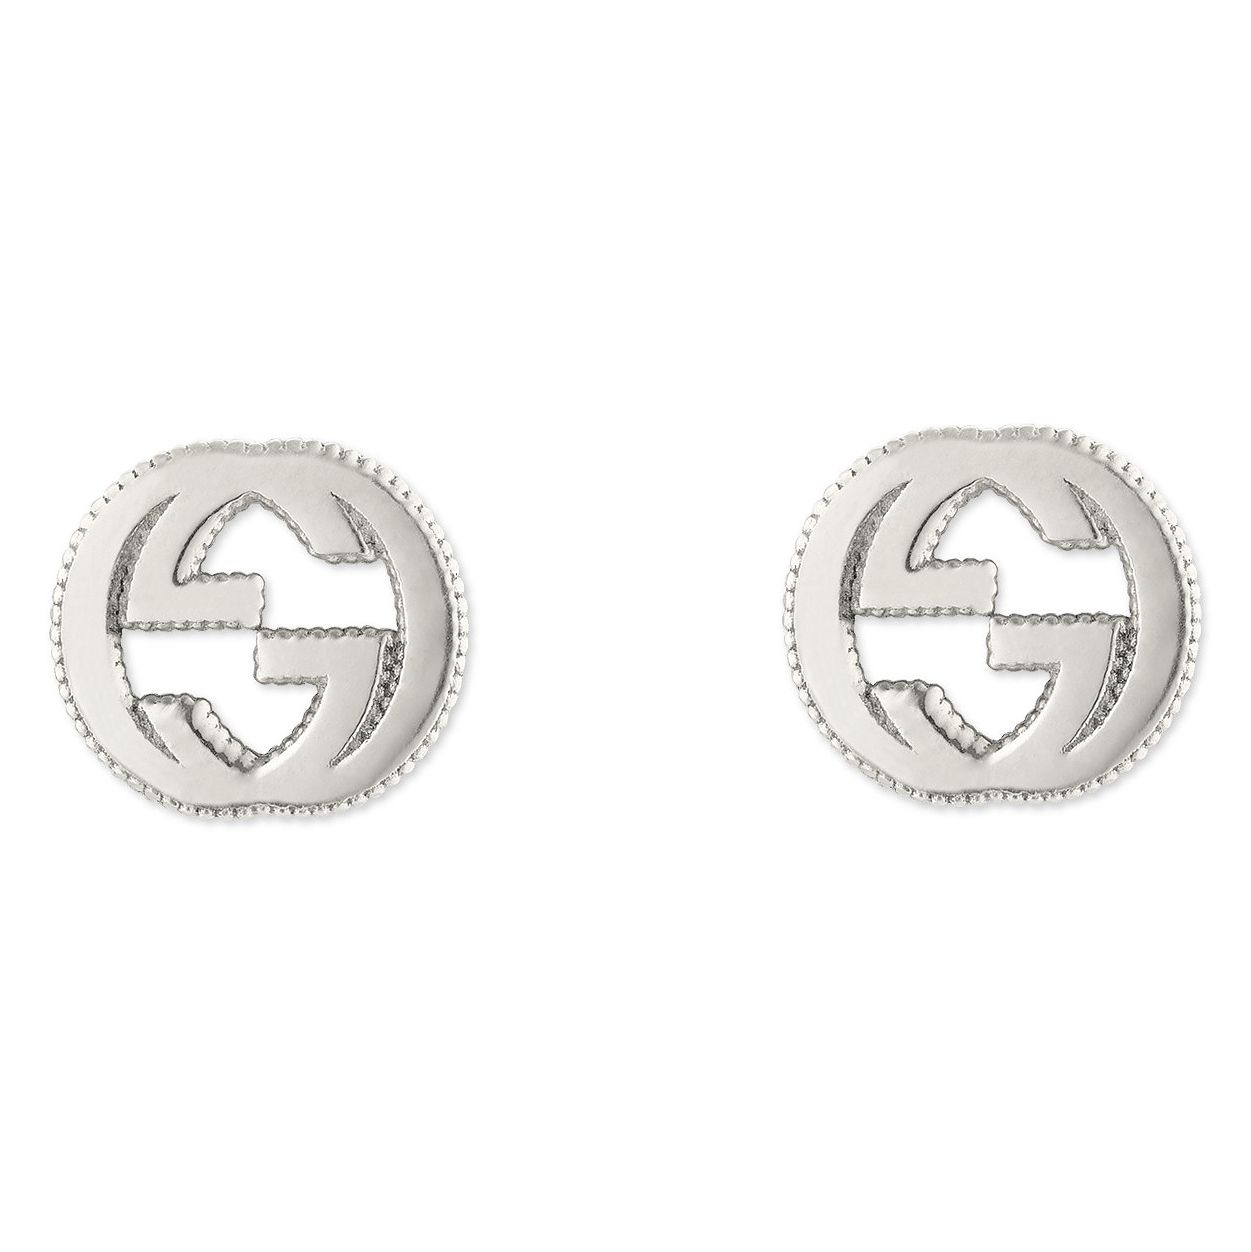 Gucci Sterling Silver Interlocking Qxg' Motif Stud Earrings - Product number 6395732